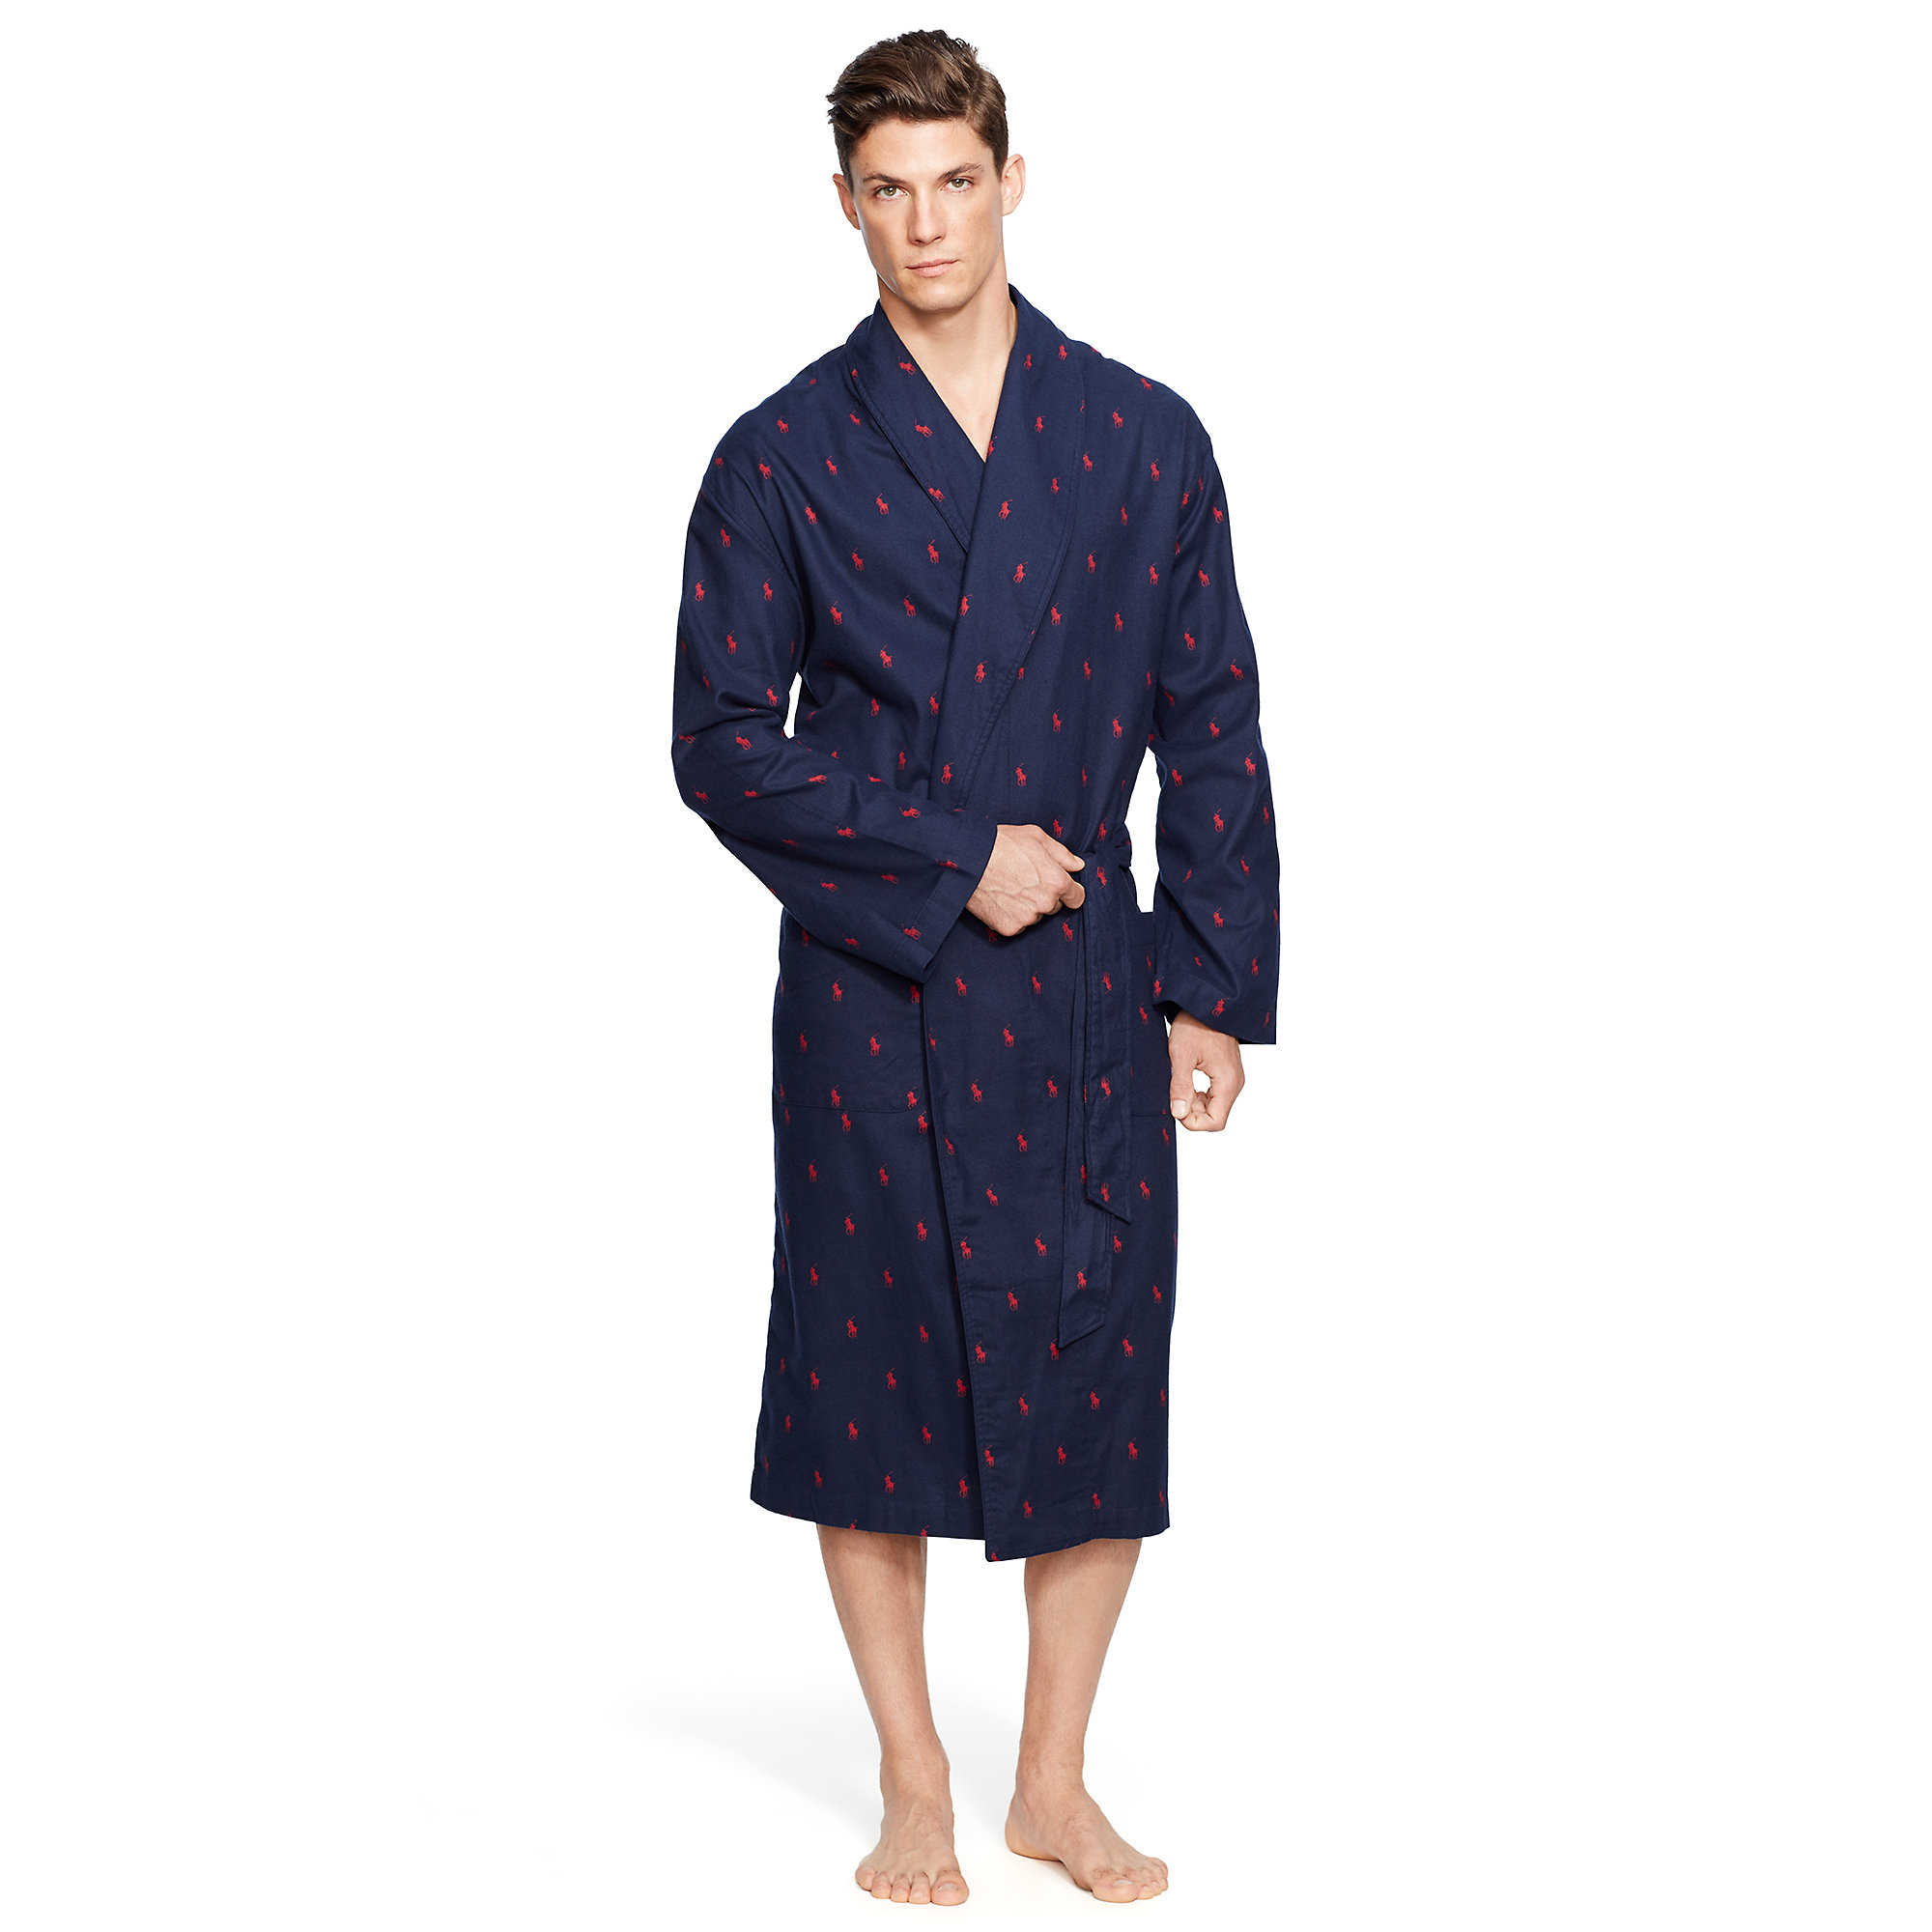 Lyst - Polo Ralph Lauren Allover Pony Flannel Robe in Blue for Men